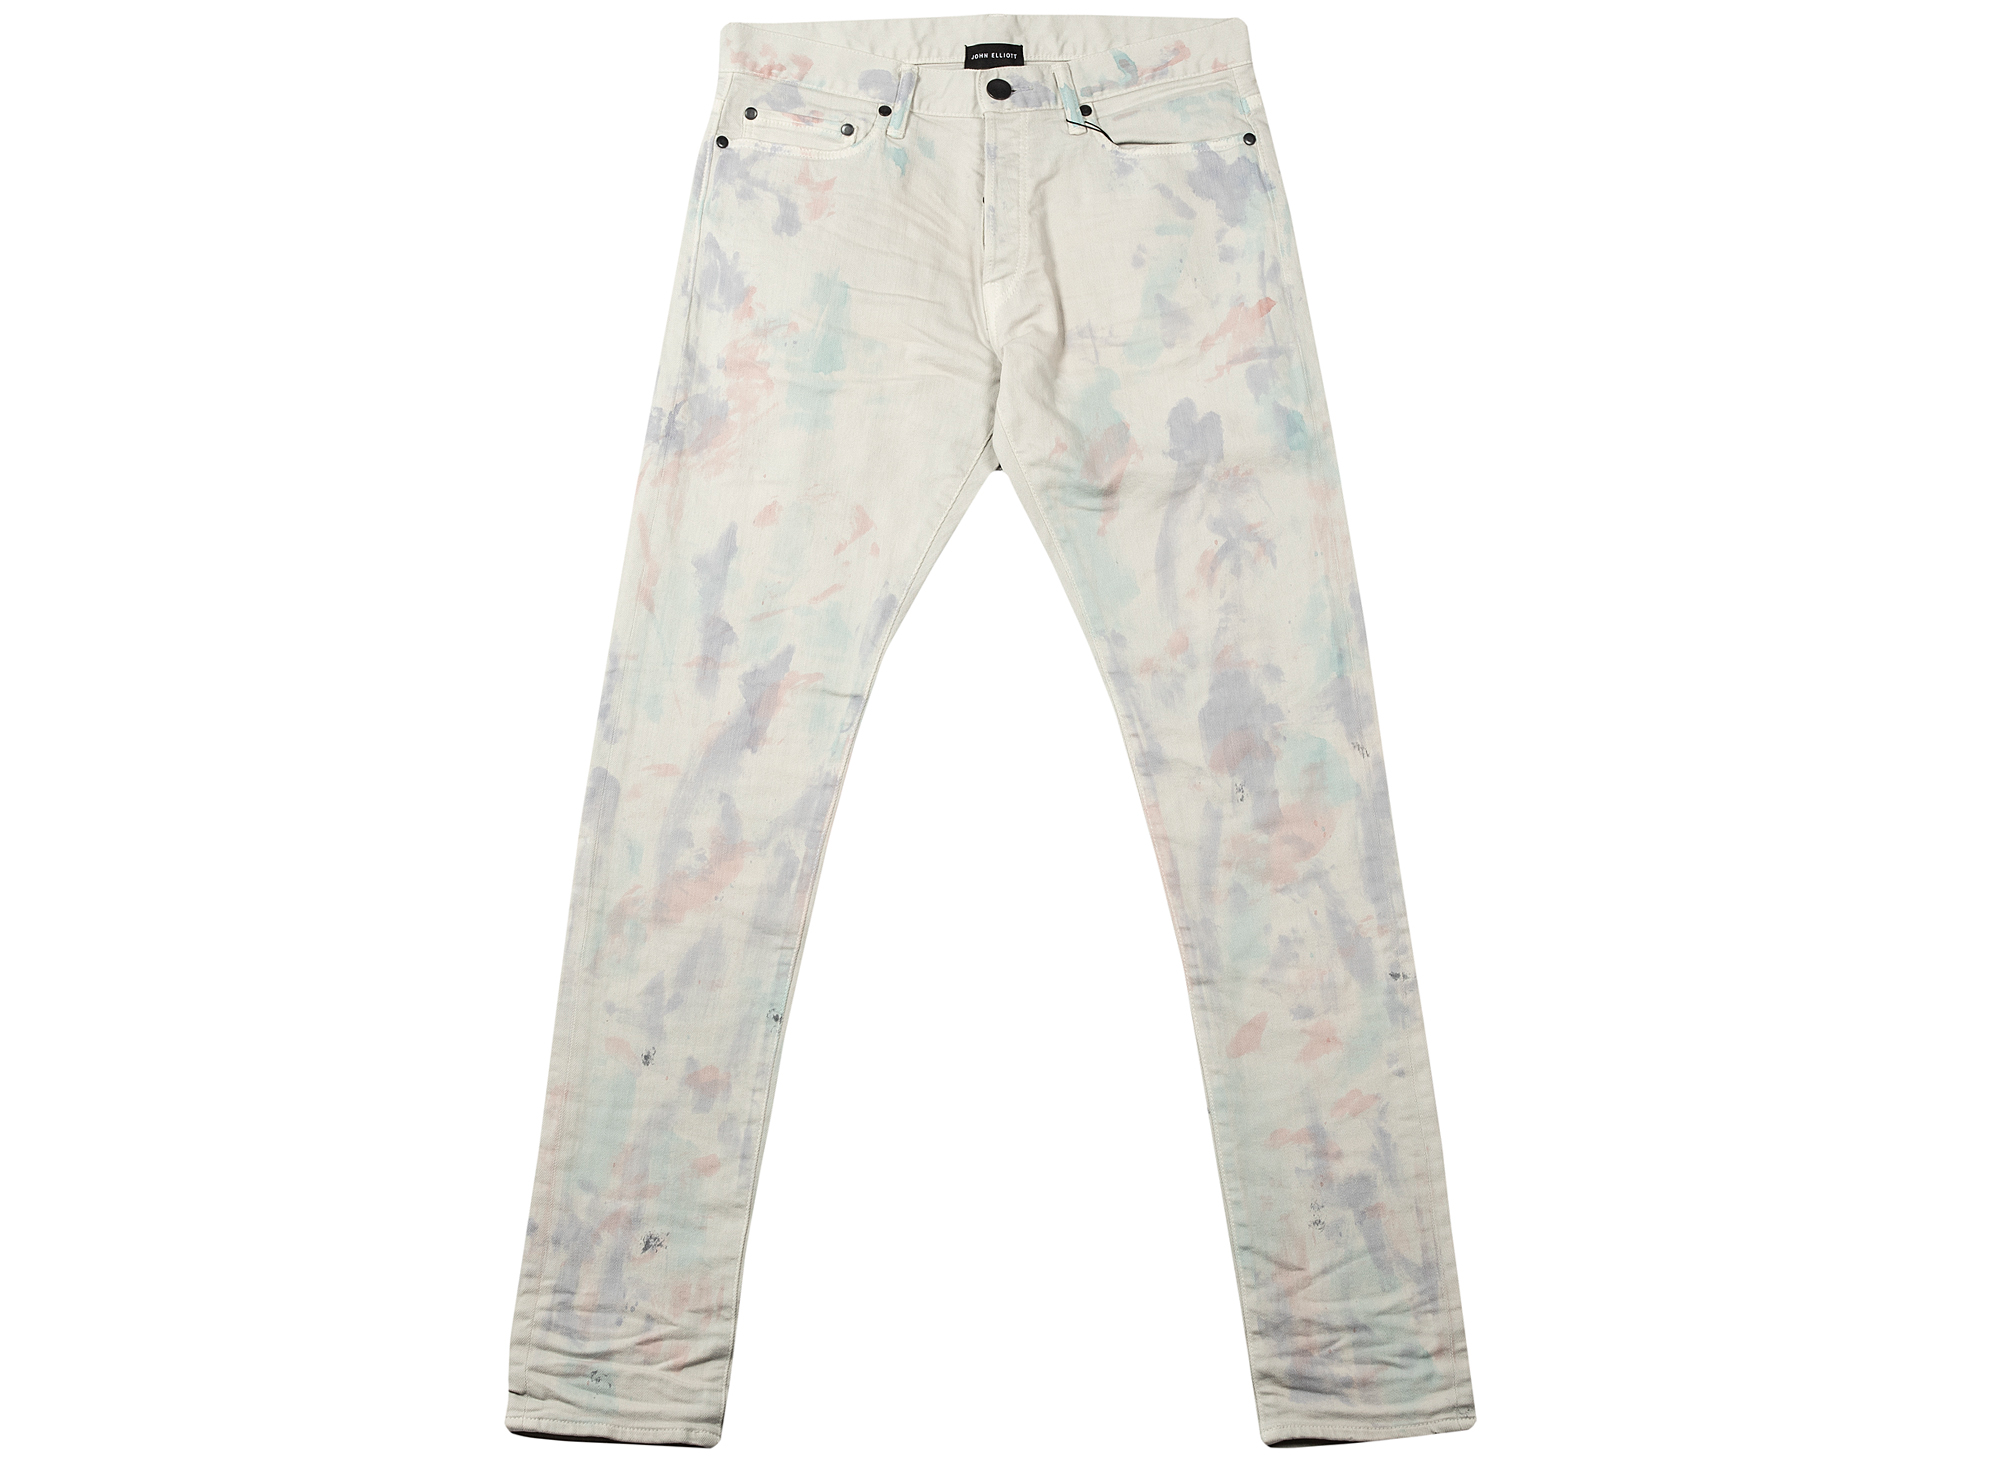 John Elliott The Cast 2 Jeans 'Push Pop' XLD